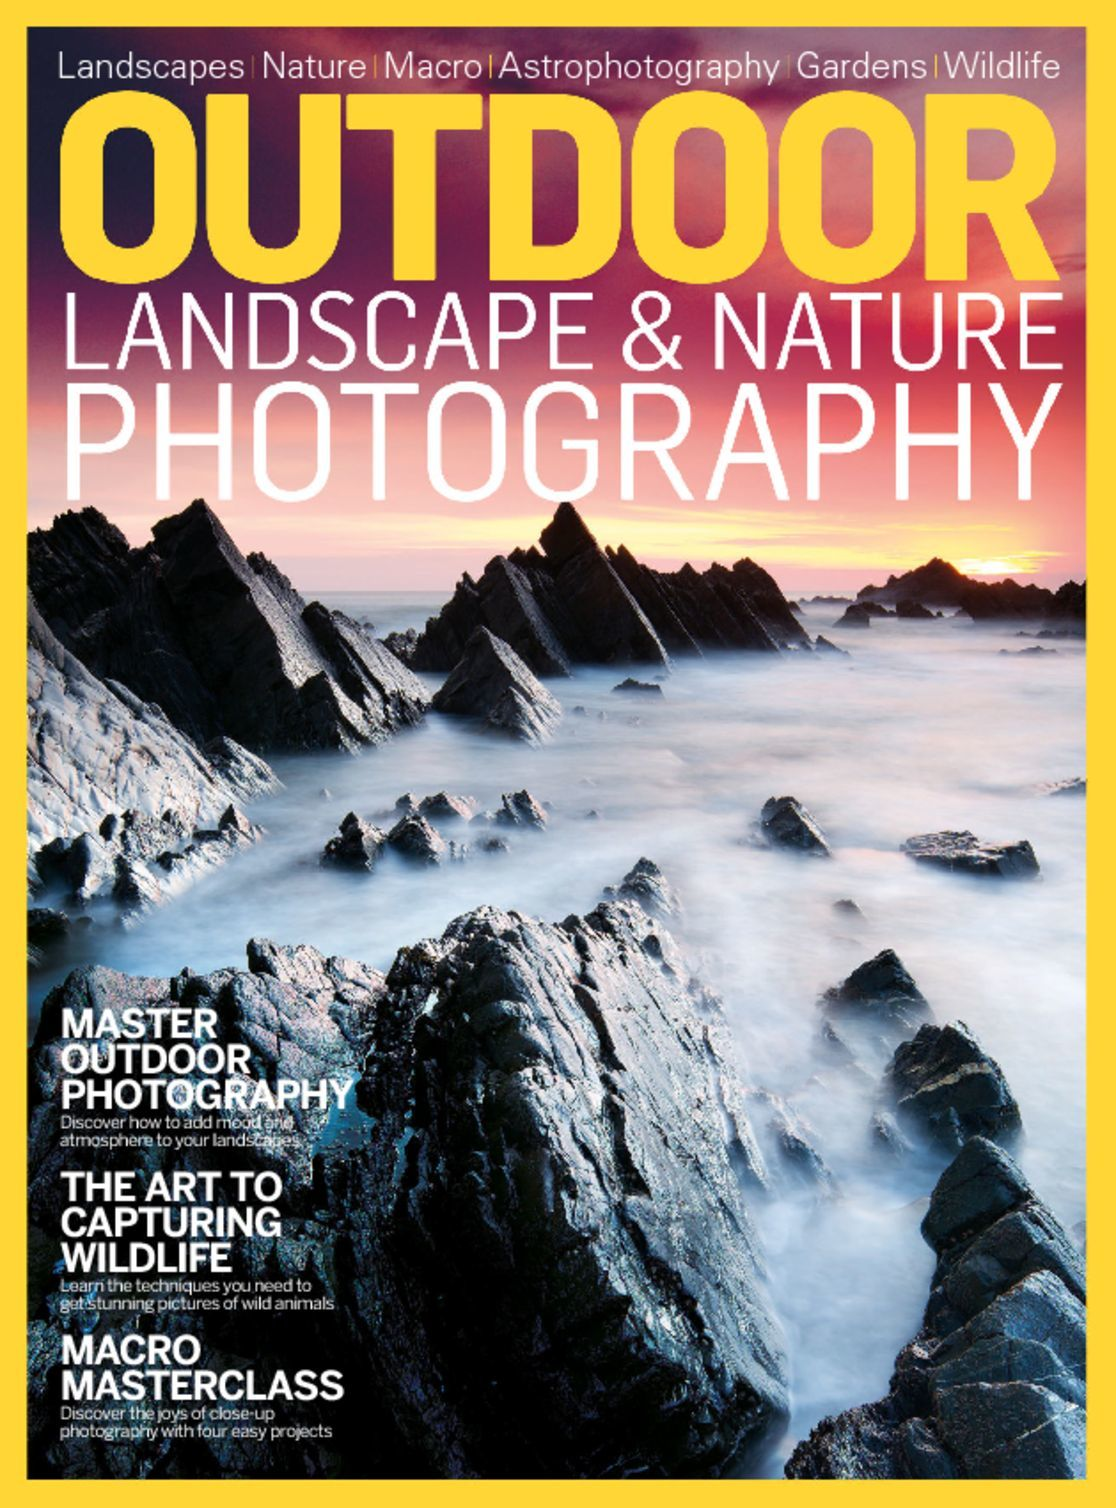 nature magazine landscape outdoor digital issue magazines wildlife photographer discountmags